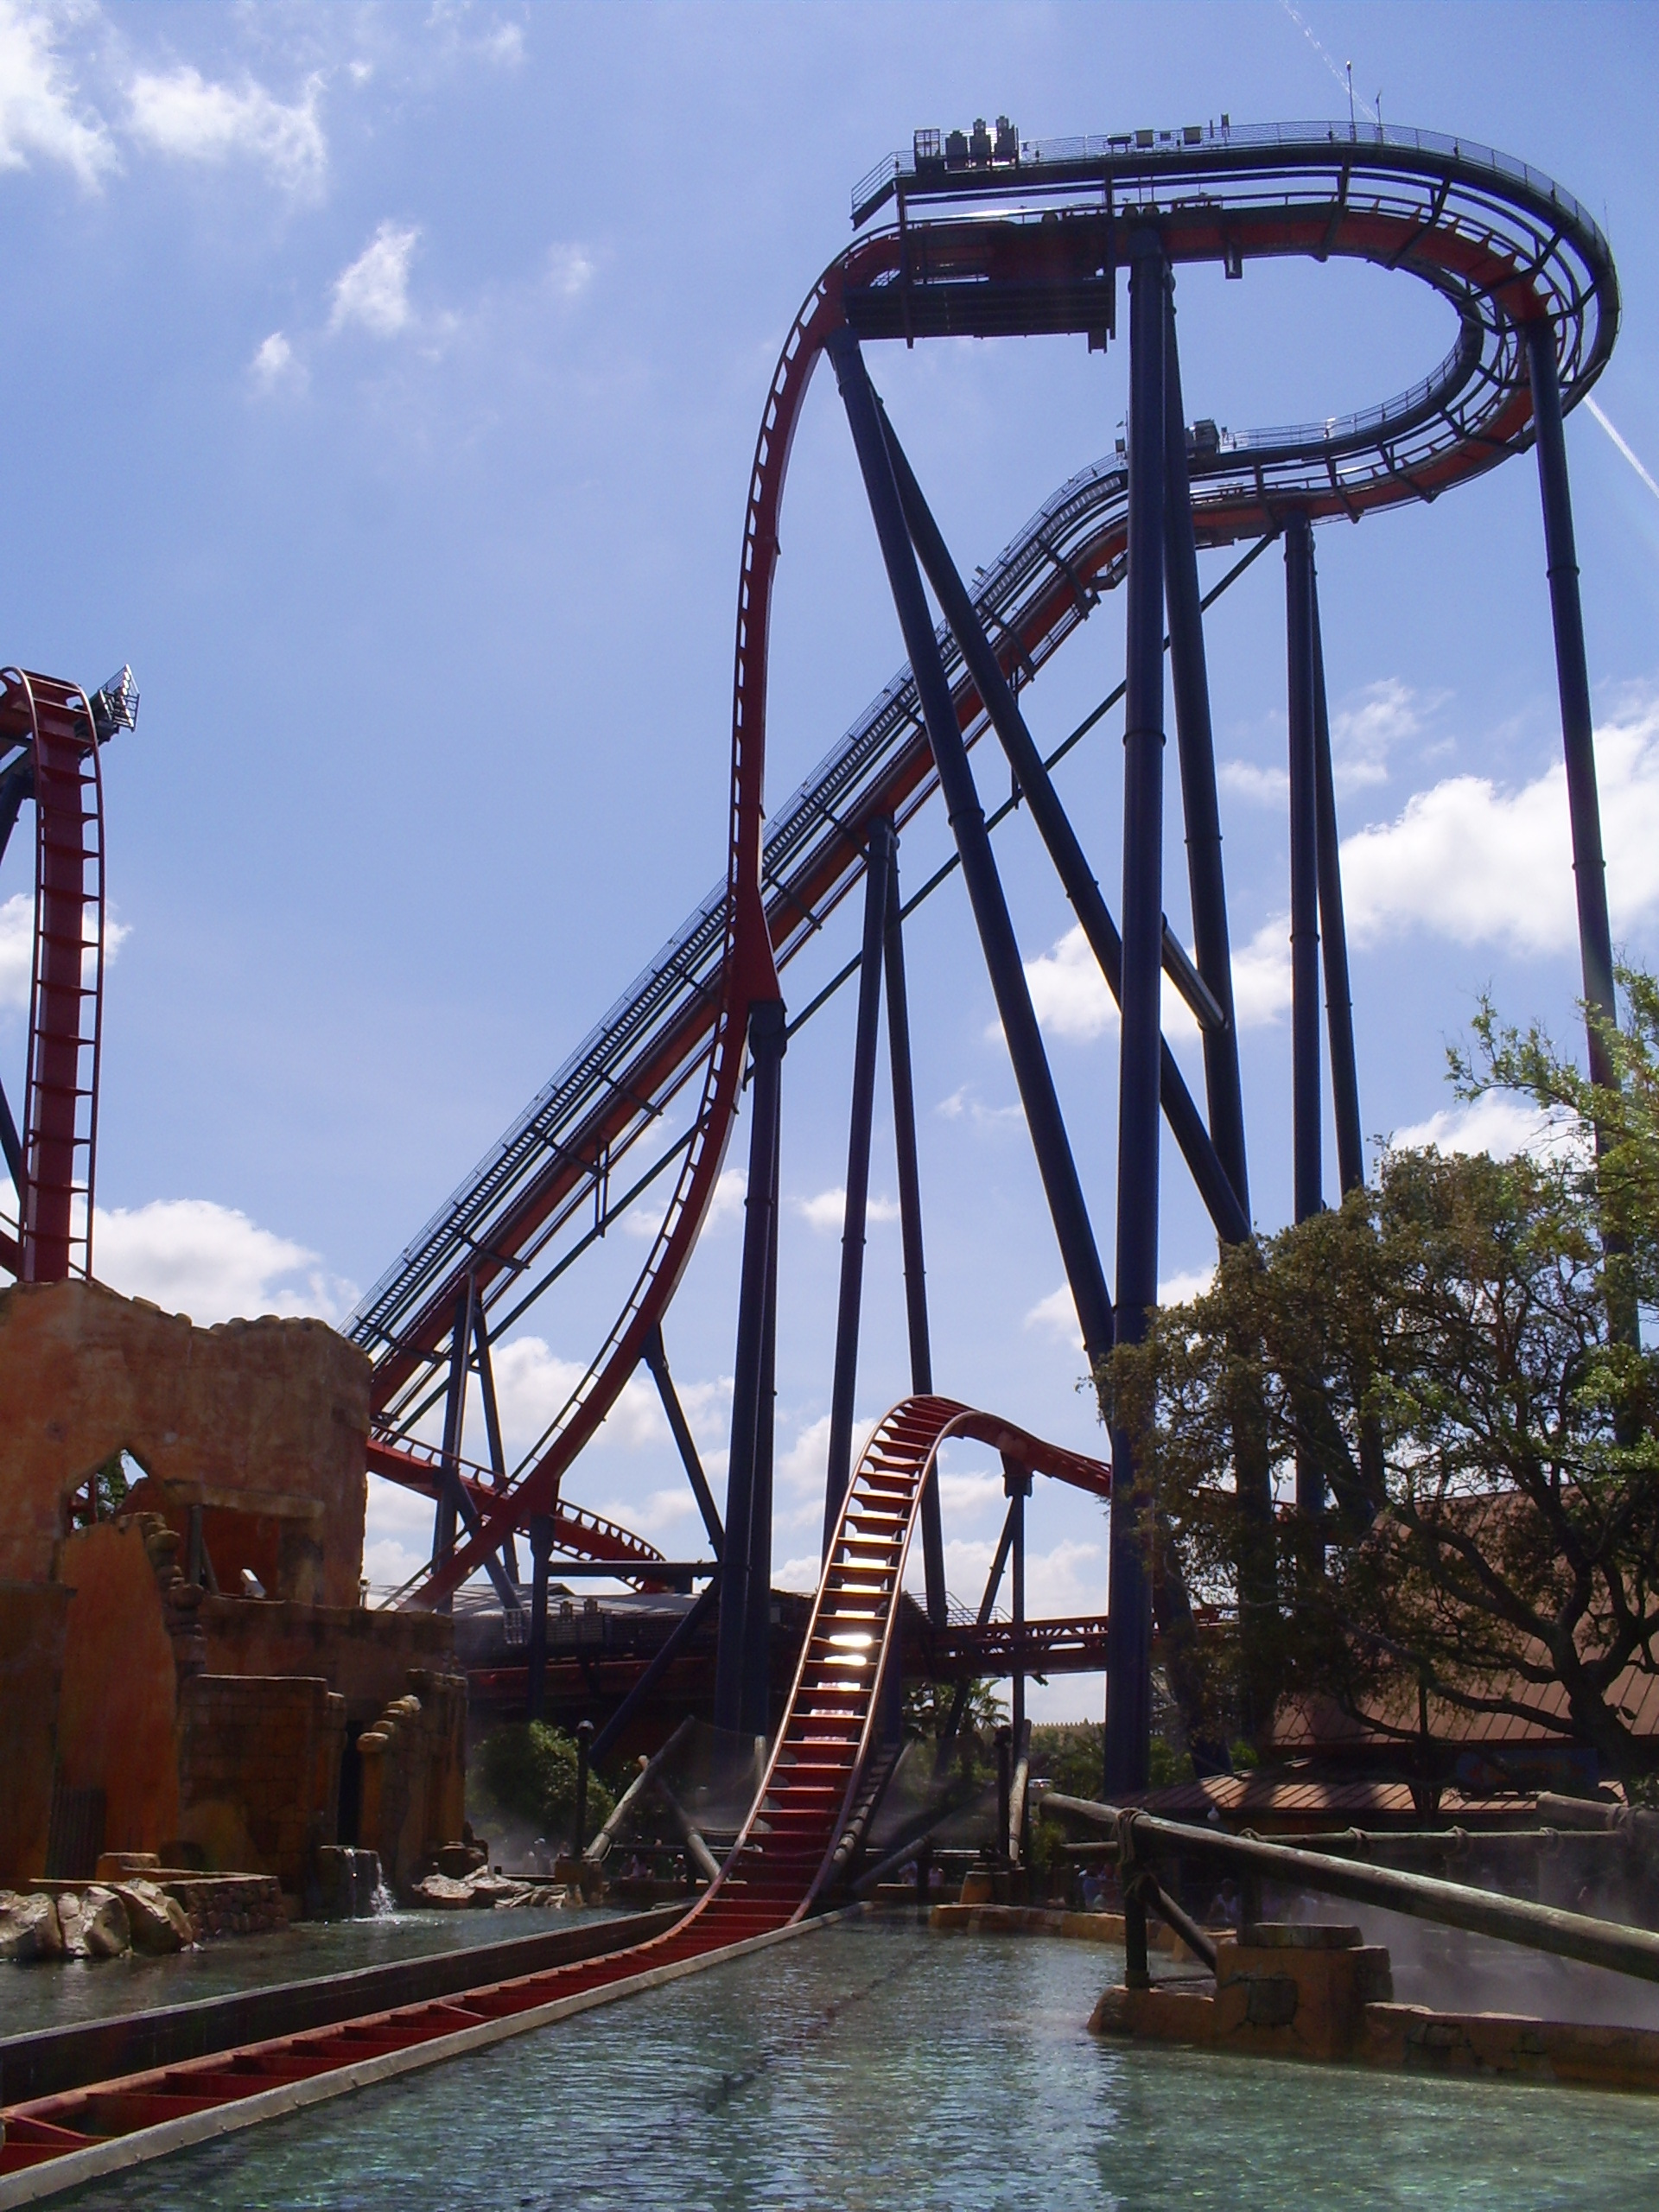 Roller Coaster Top 10 Roller Coasters In Orlando Cultural Travel Guide